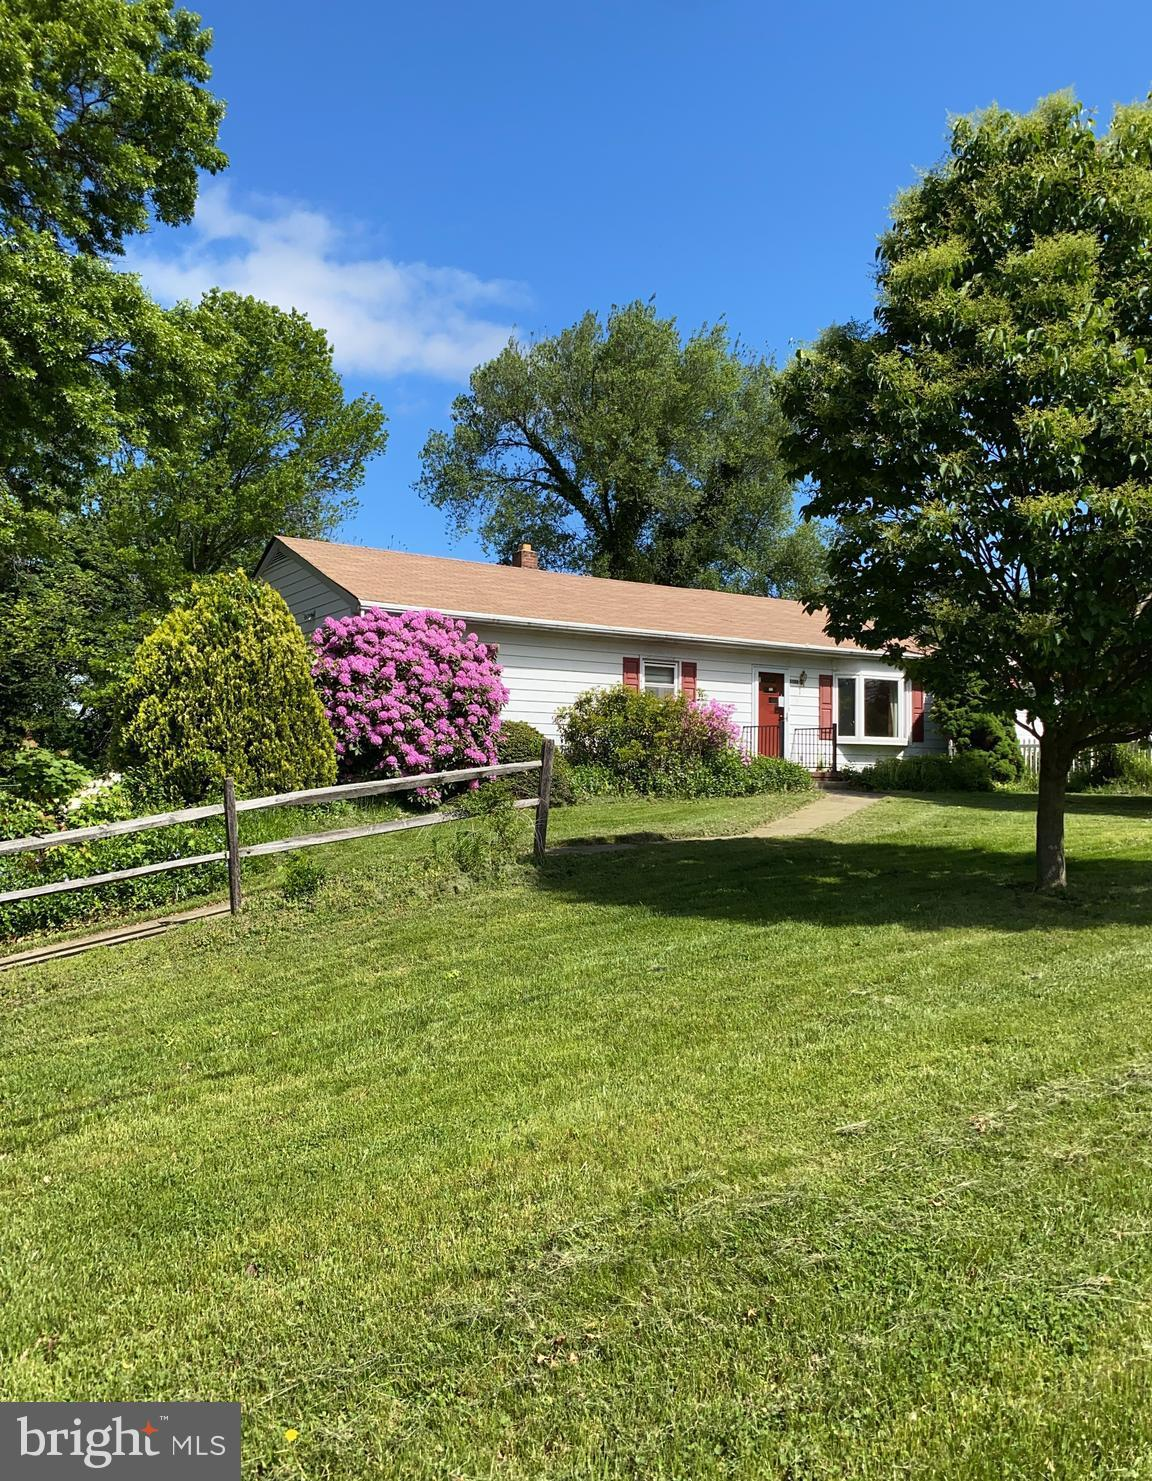 Welcome home to this Fannie Mae HomePath (HP) property. This 1800+ square foot rancher has gorgeous